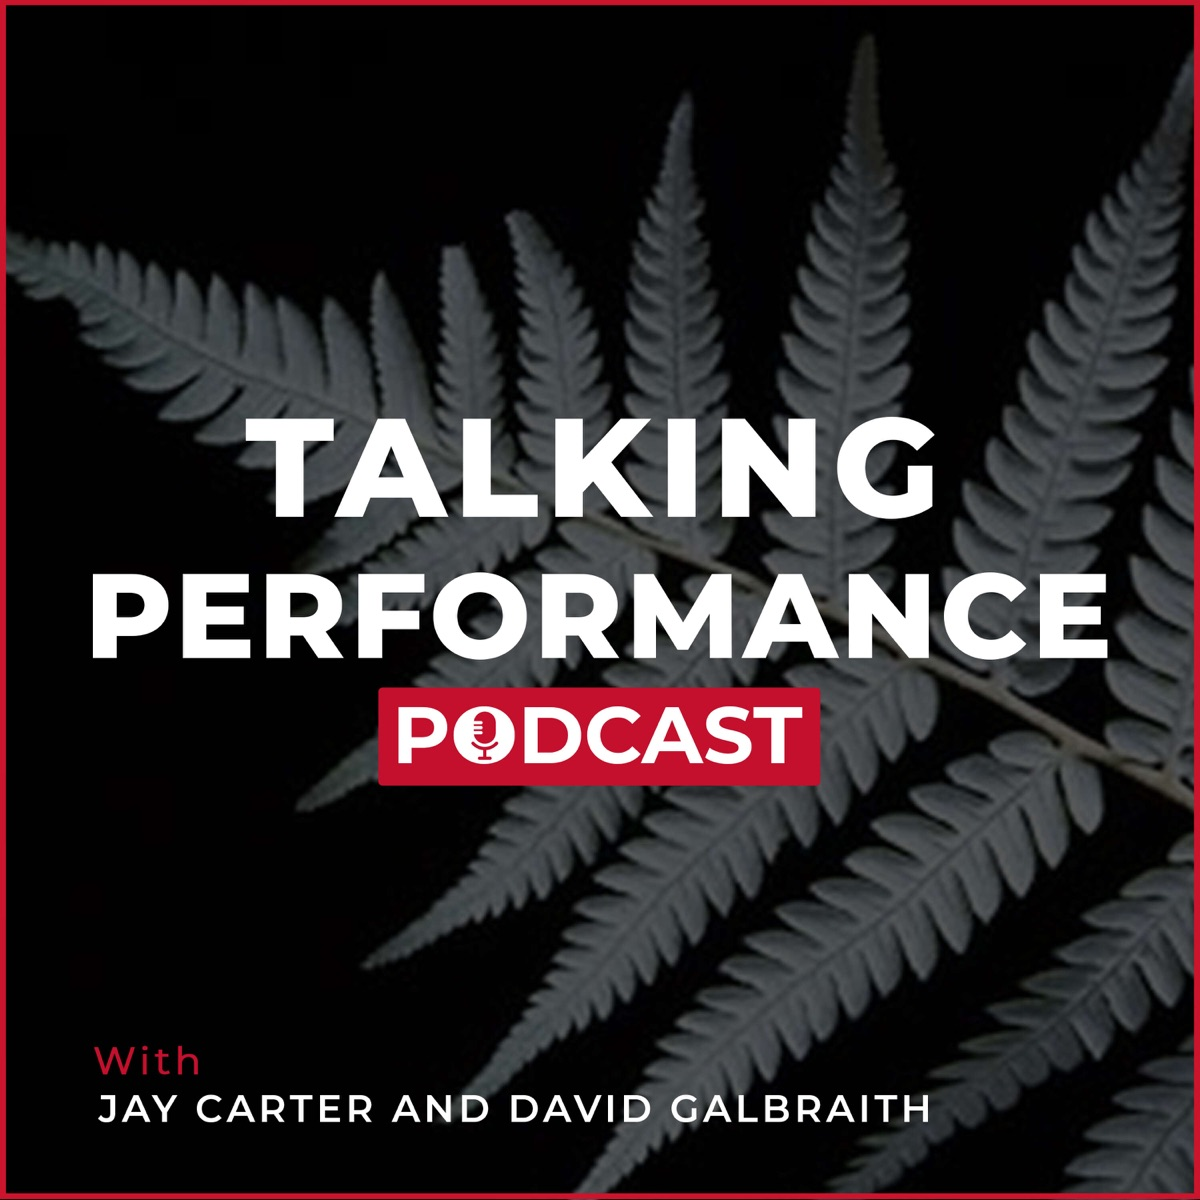 Talking Performance Episode 29 The Galbraith Whanau and The Panel